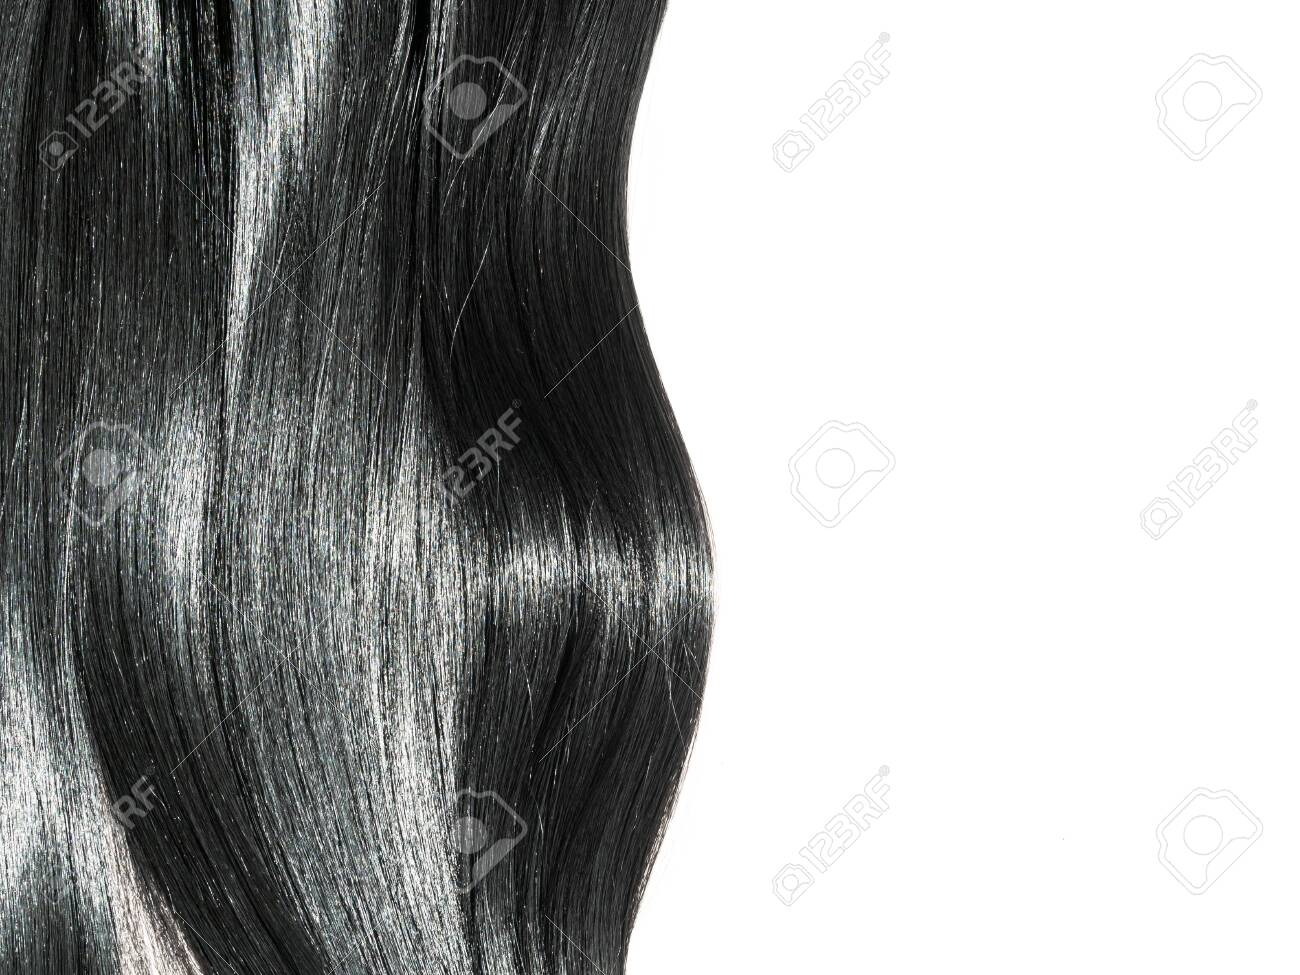 Shiny straight black hair background. Beautiful smooth brunette hair backdrop - 121634191